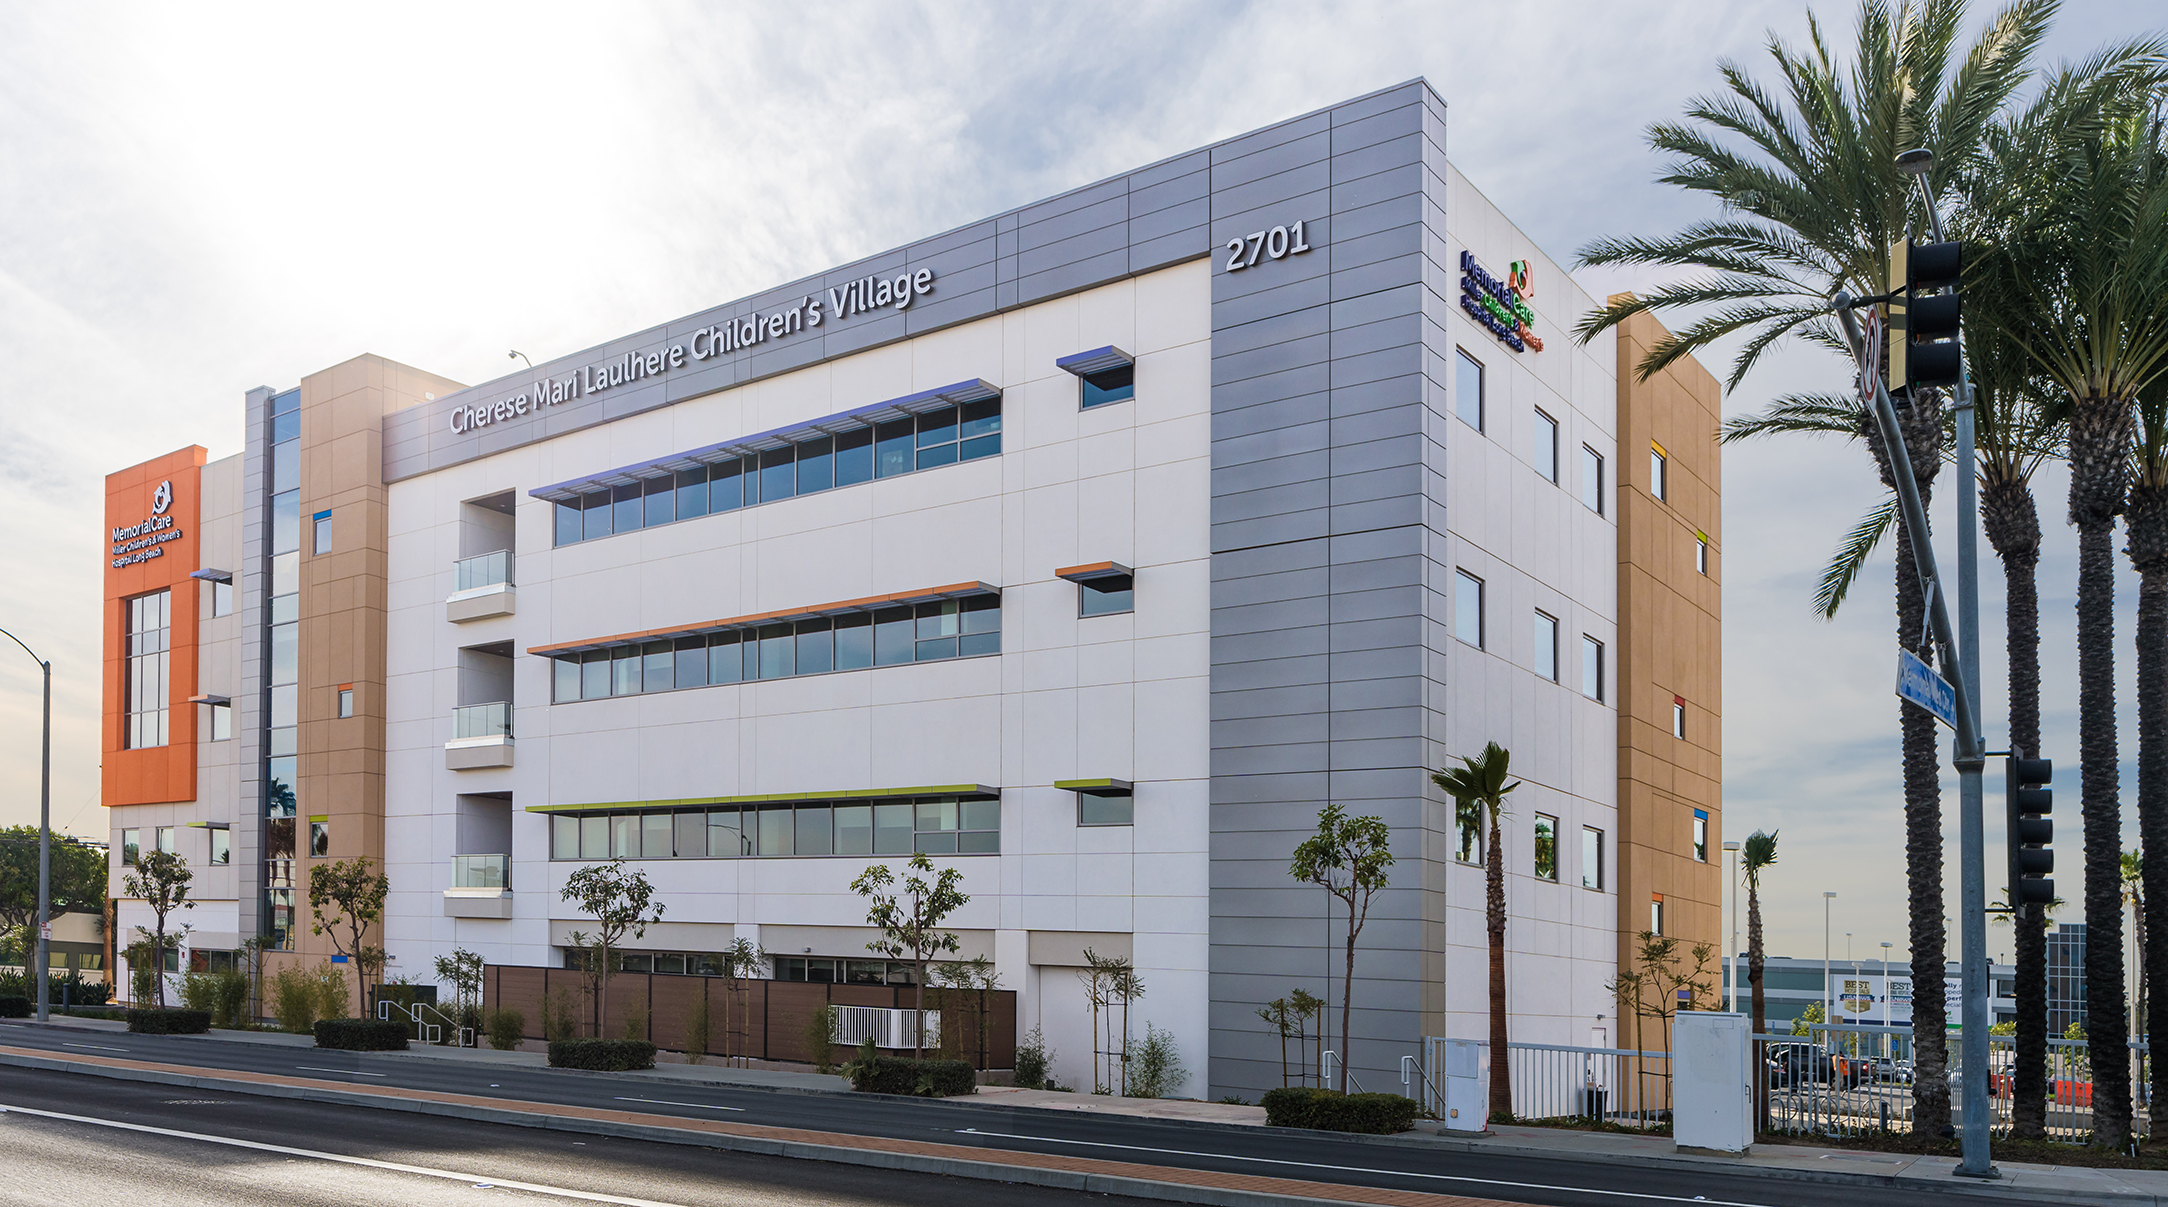 Sto Corp. Recognized With Multiple Honors  Including EIFS Hero of the Year Award